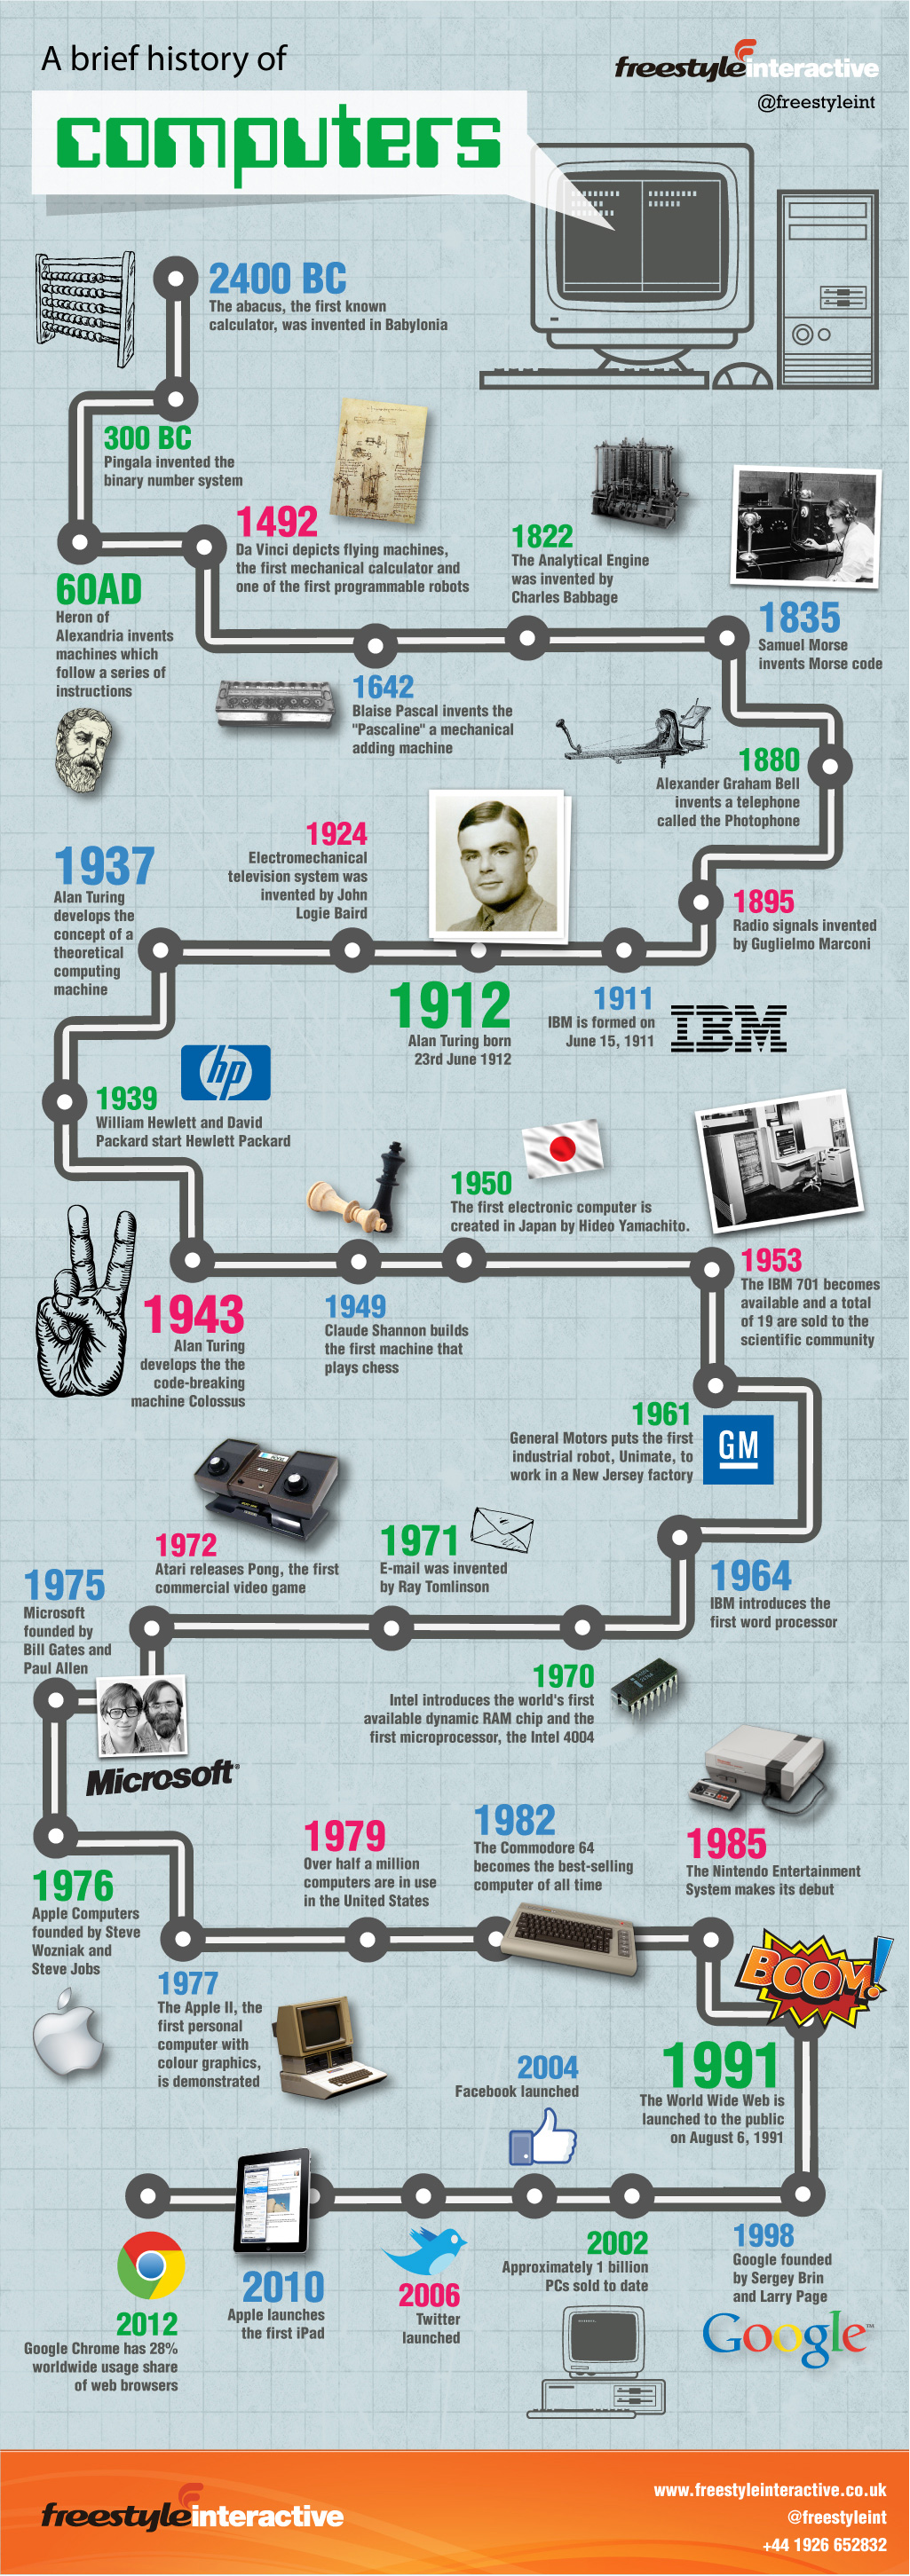 History of Computers Thanks to Alan Turing's Invaluable Work